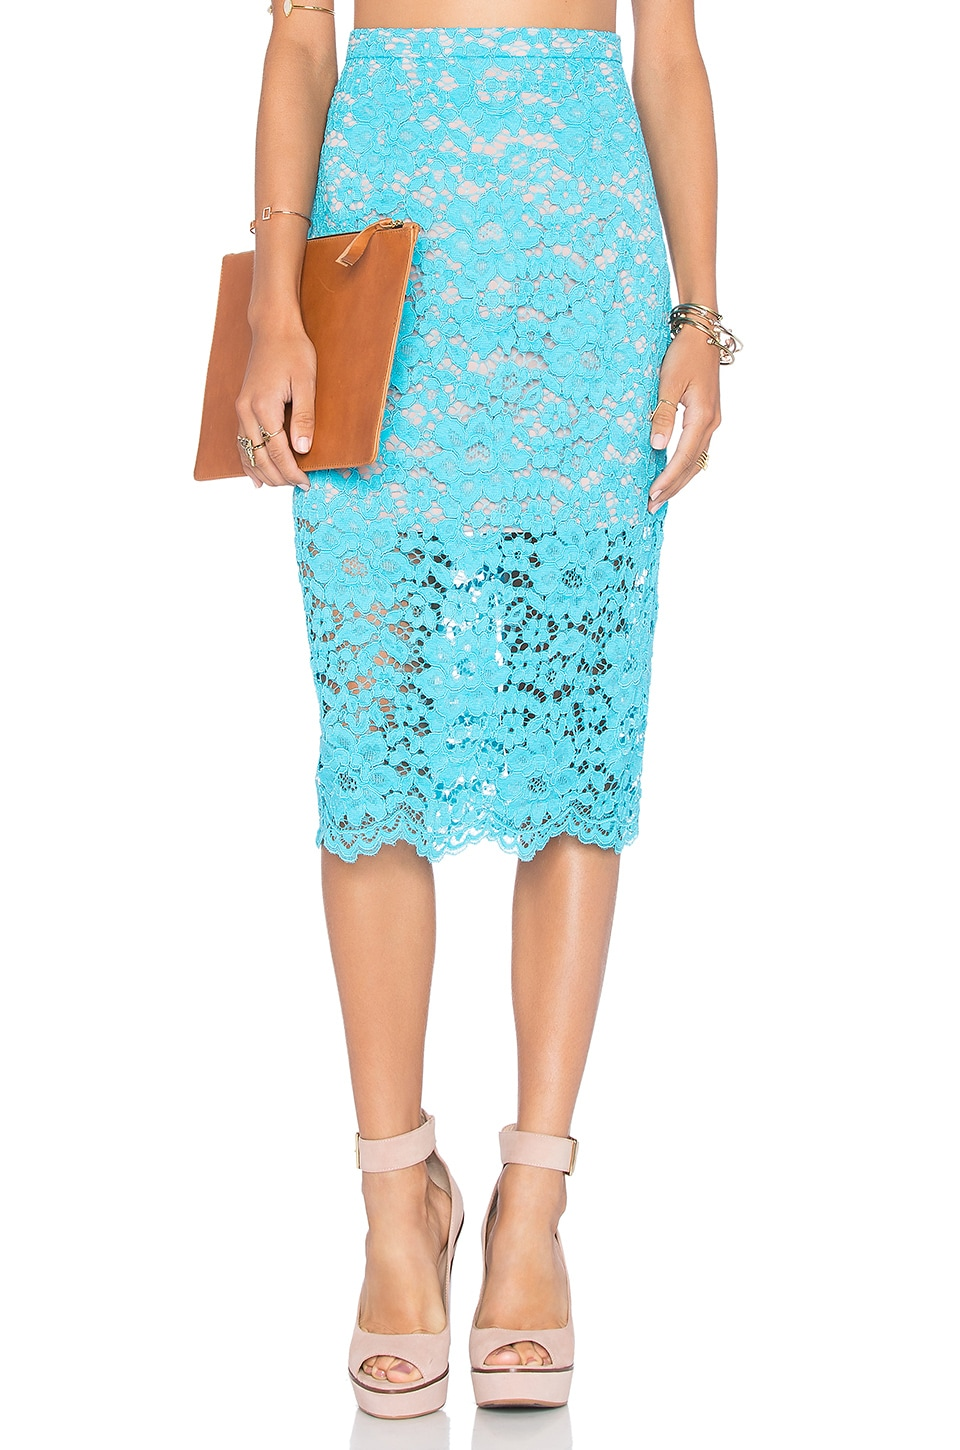 NBD x Naven Twins Oblivion Layered Skirt in Turquoise Lace